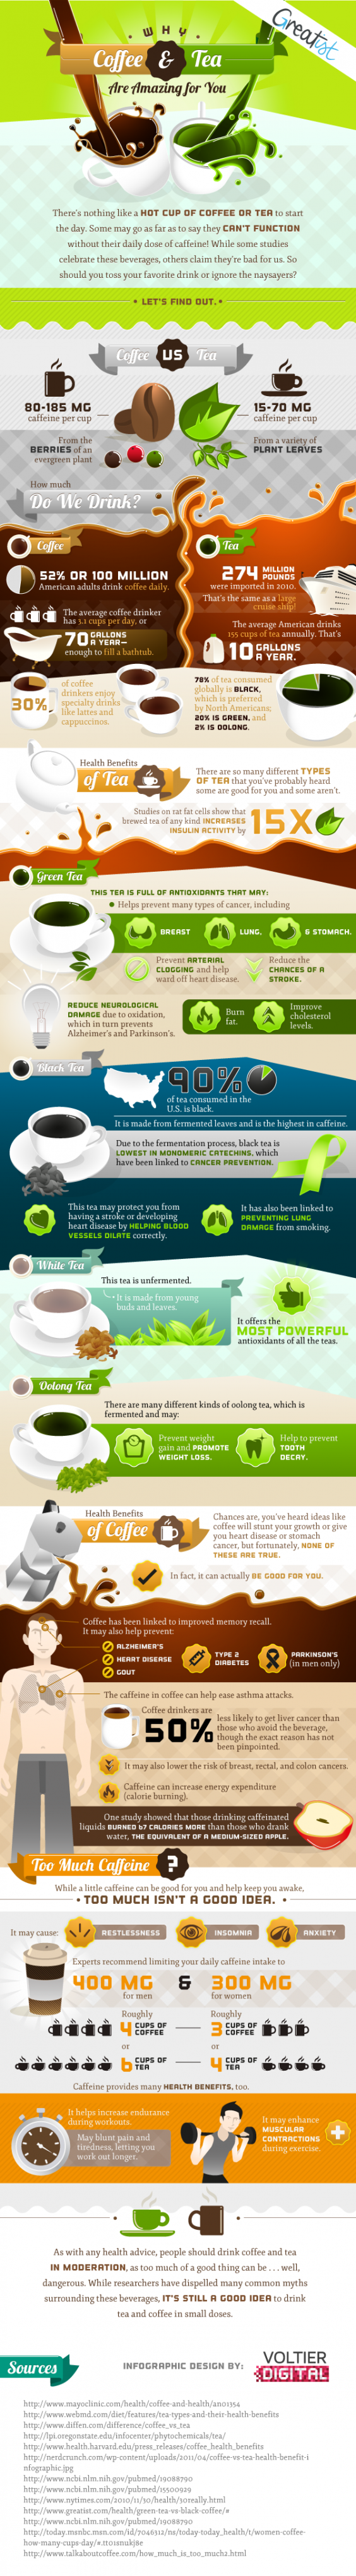 Why Coffee Tea Are Amazing for You INFOGRAPHIC